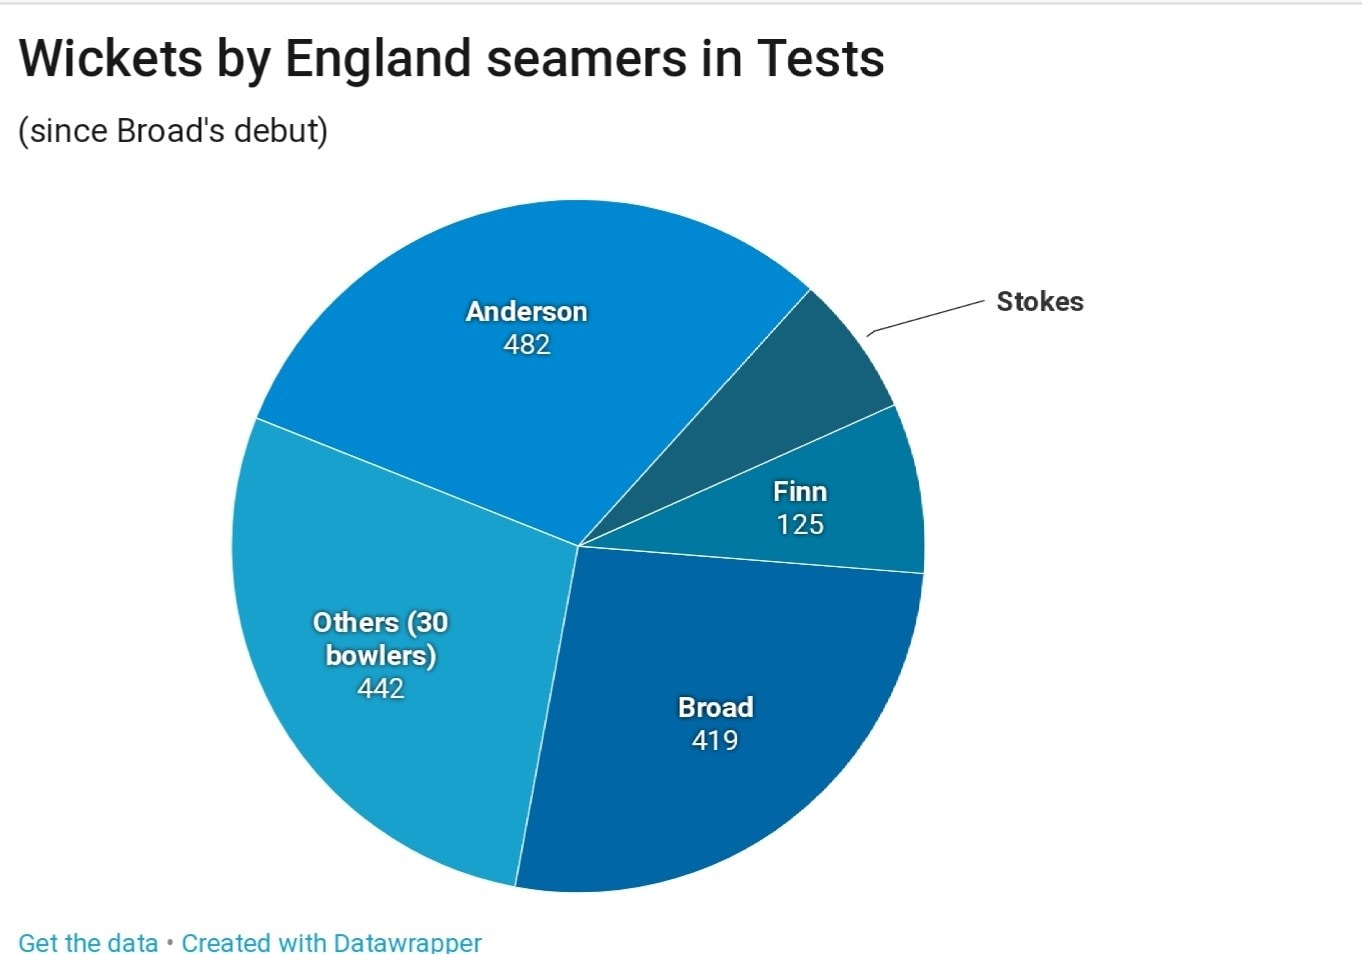 England bowlers in Tests